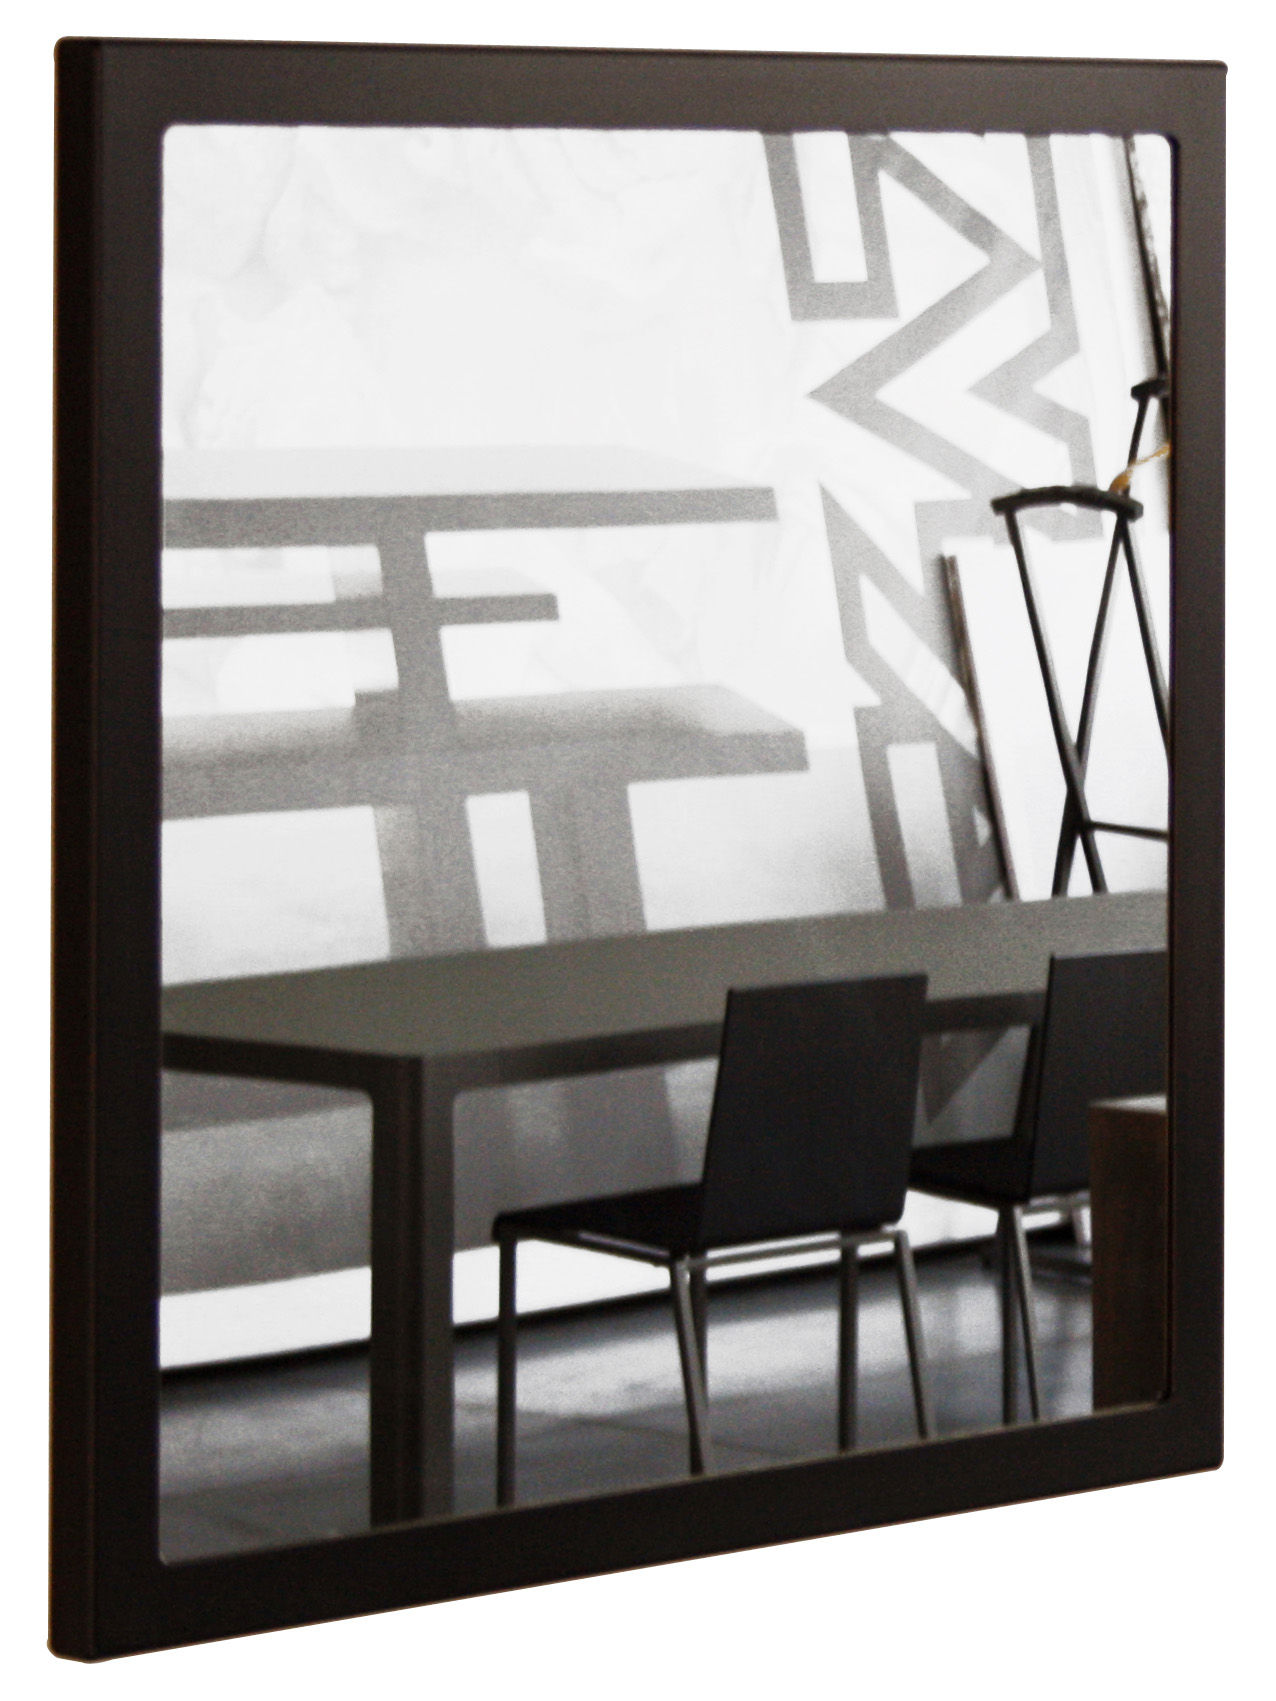 Little frame wall mirror 90 x 90 cm black phosphatized for Miroir 90x90